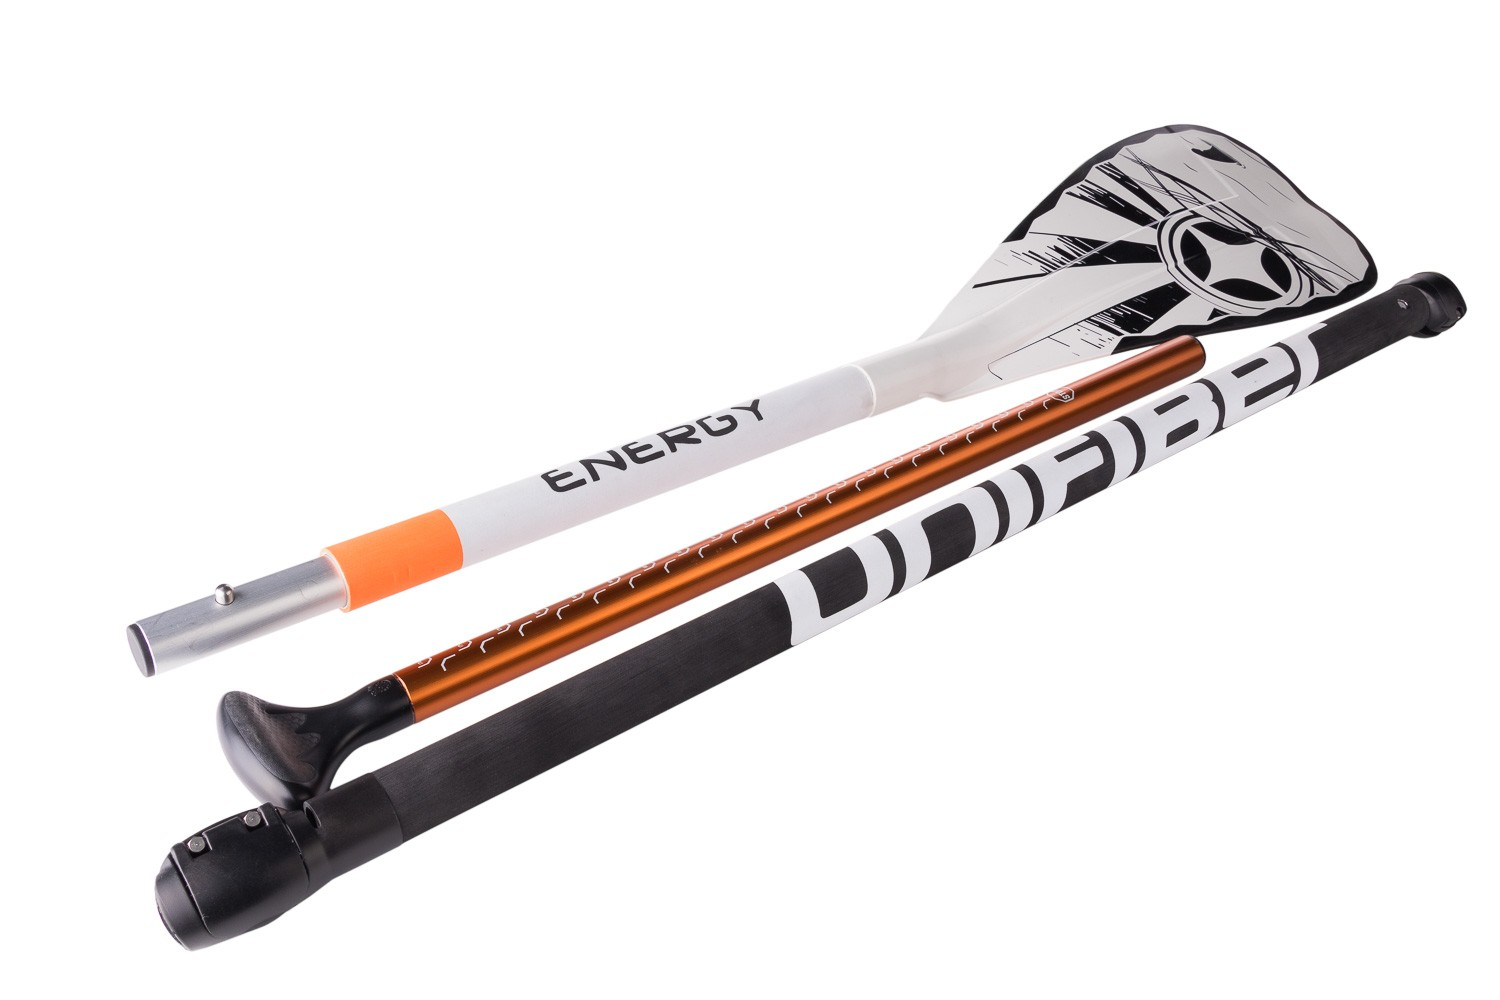 Aluminium Sup T6 Paddle 3 PC Energy 170 - 220